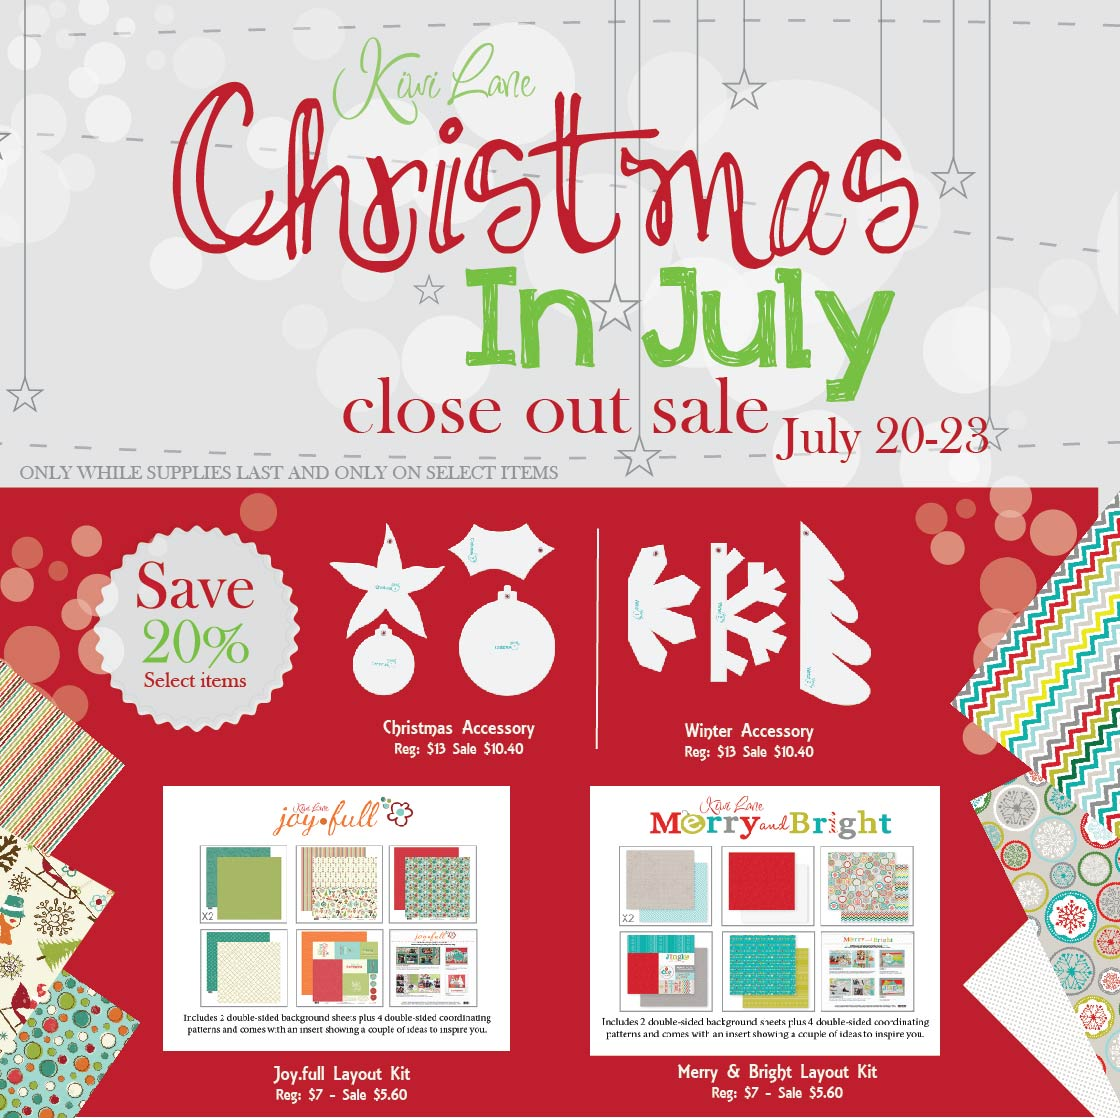 Christmas In July Sale Ideas.Christmas In July Archives Kiwi Lane